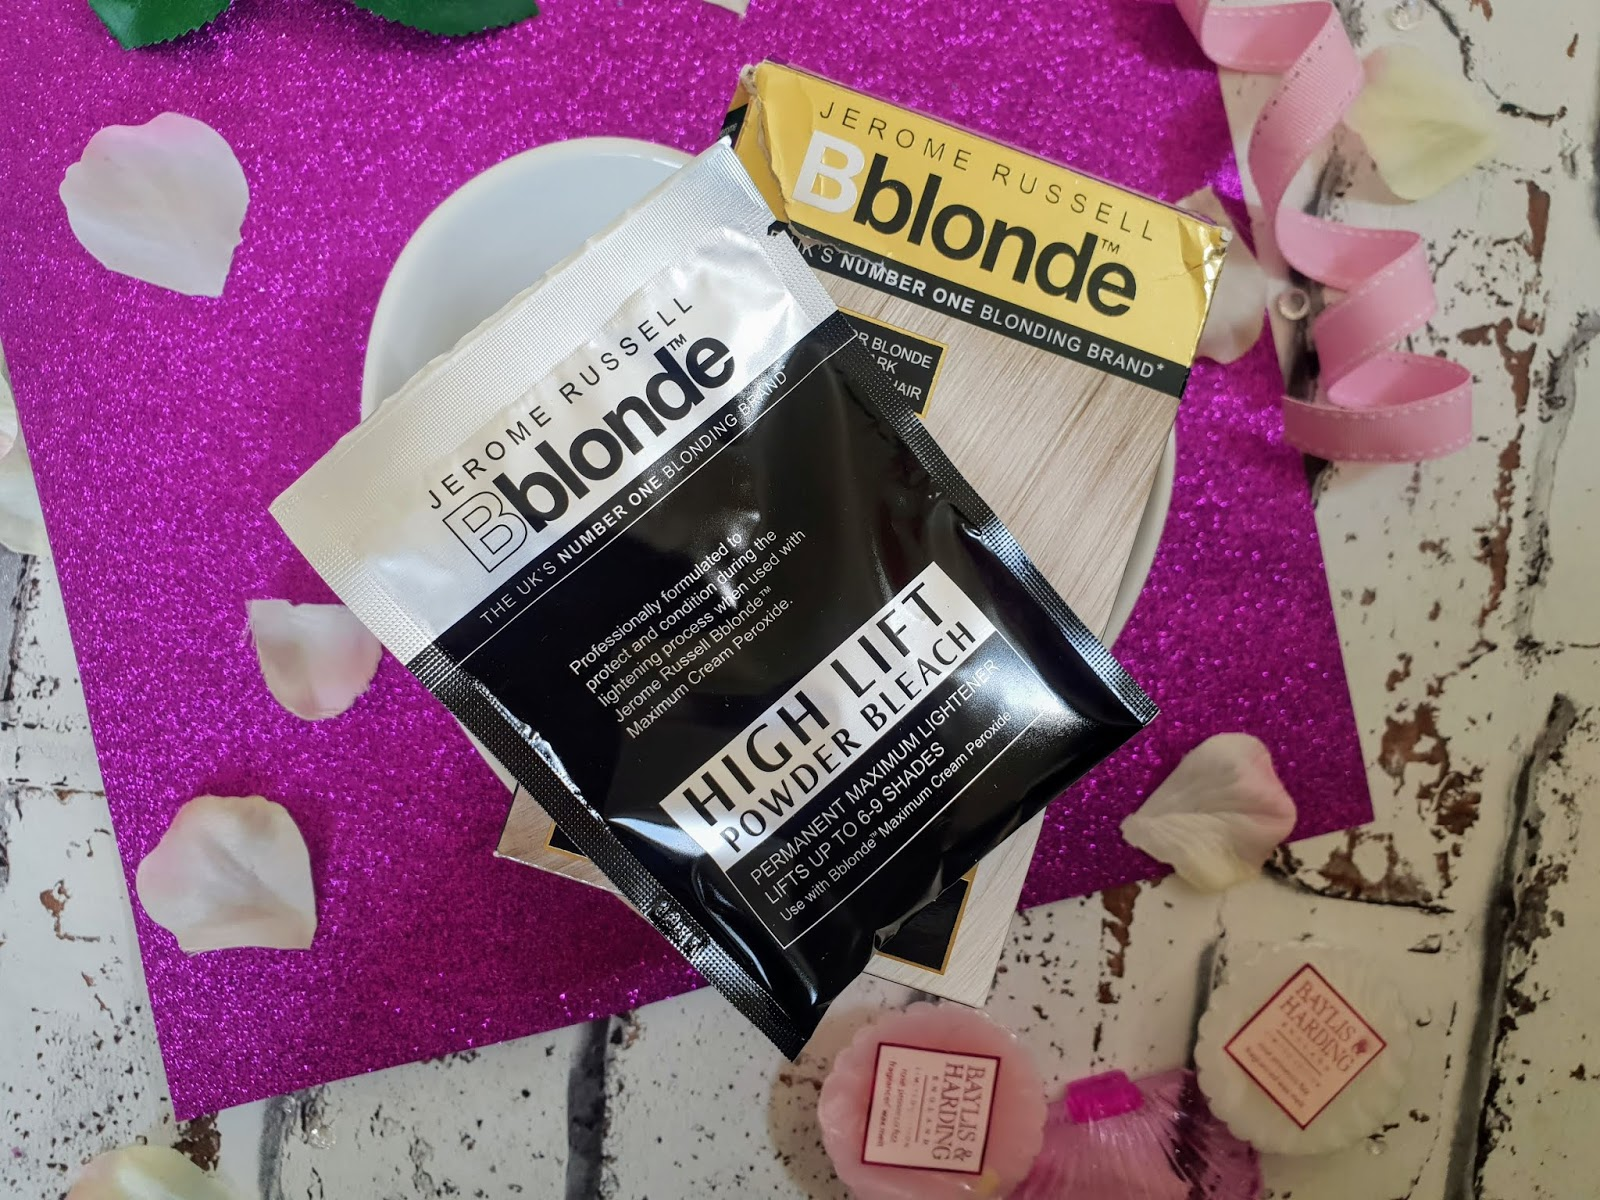 Bblonde High Lift Powder Bleach review